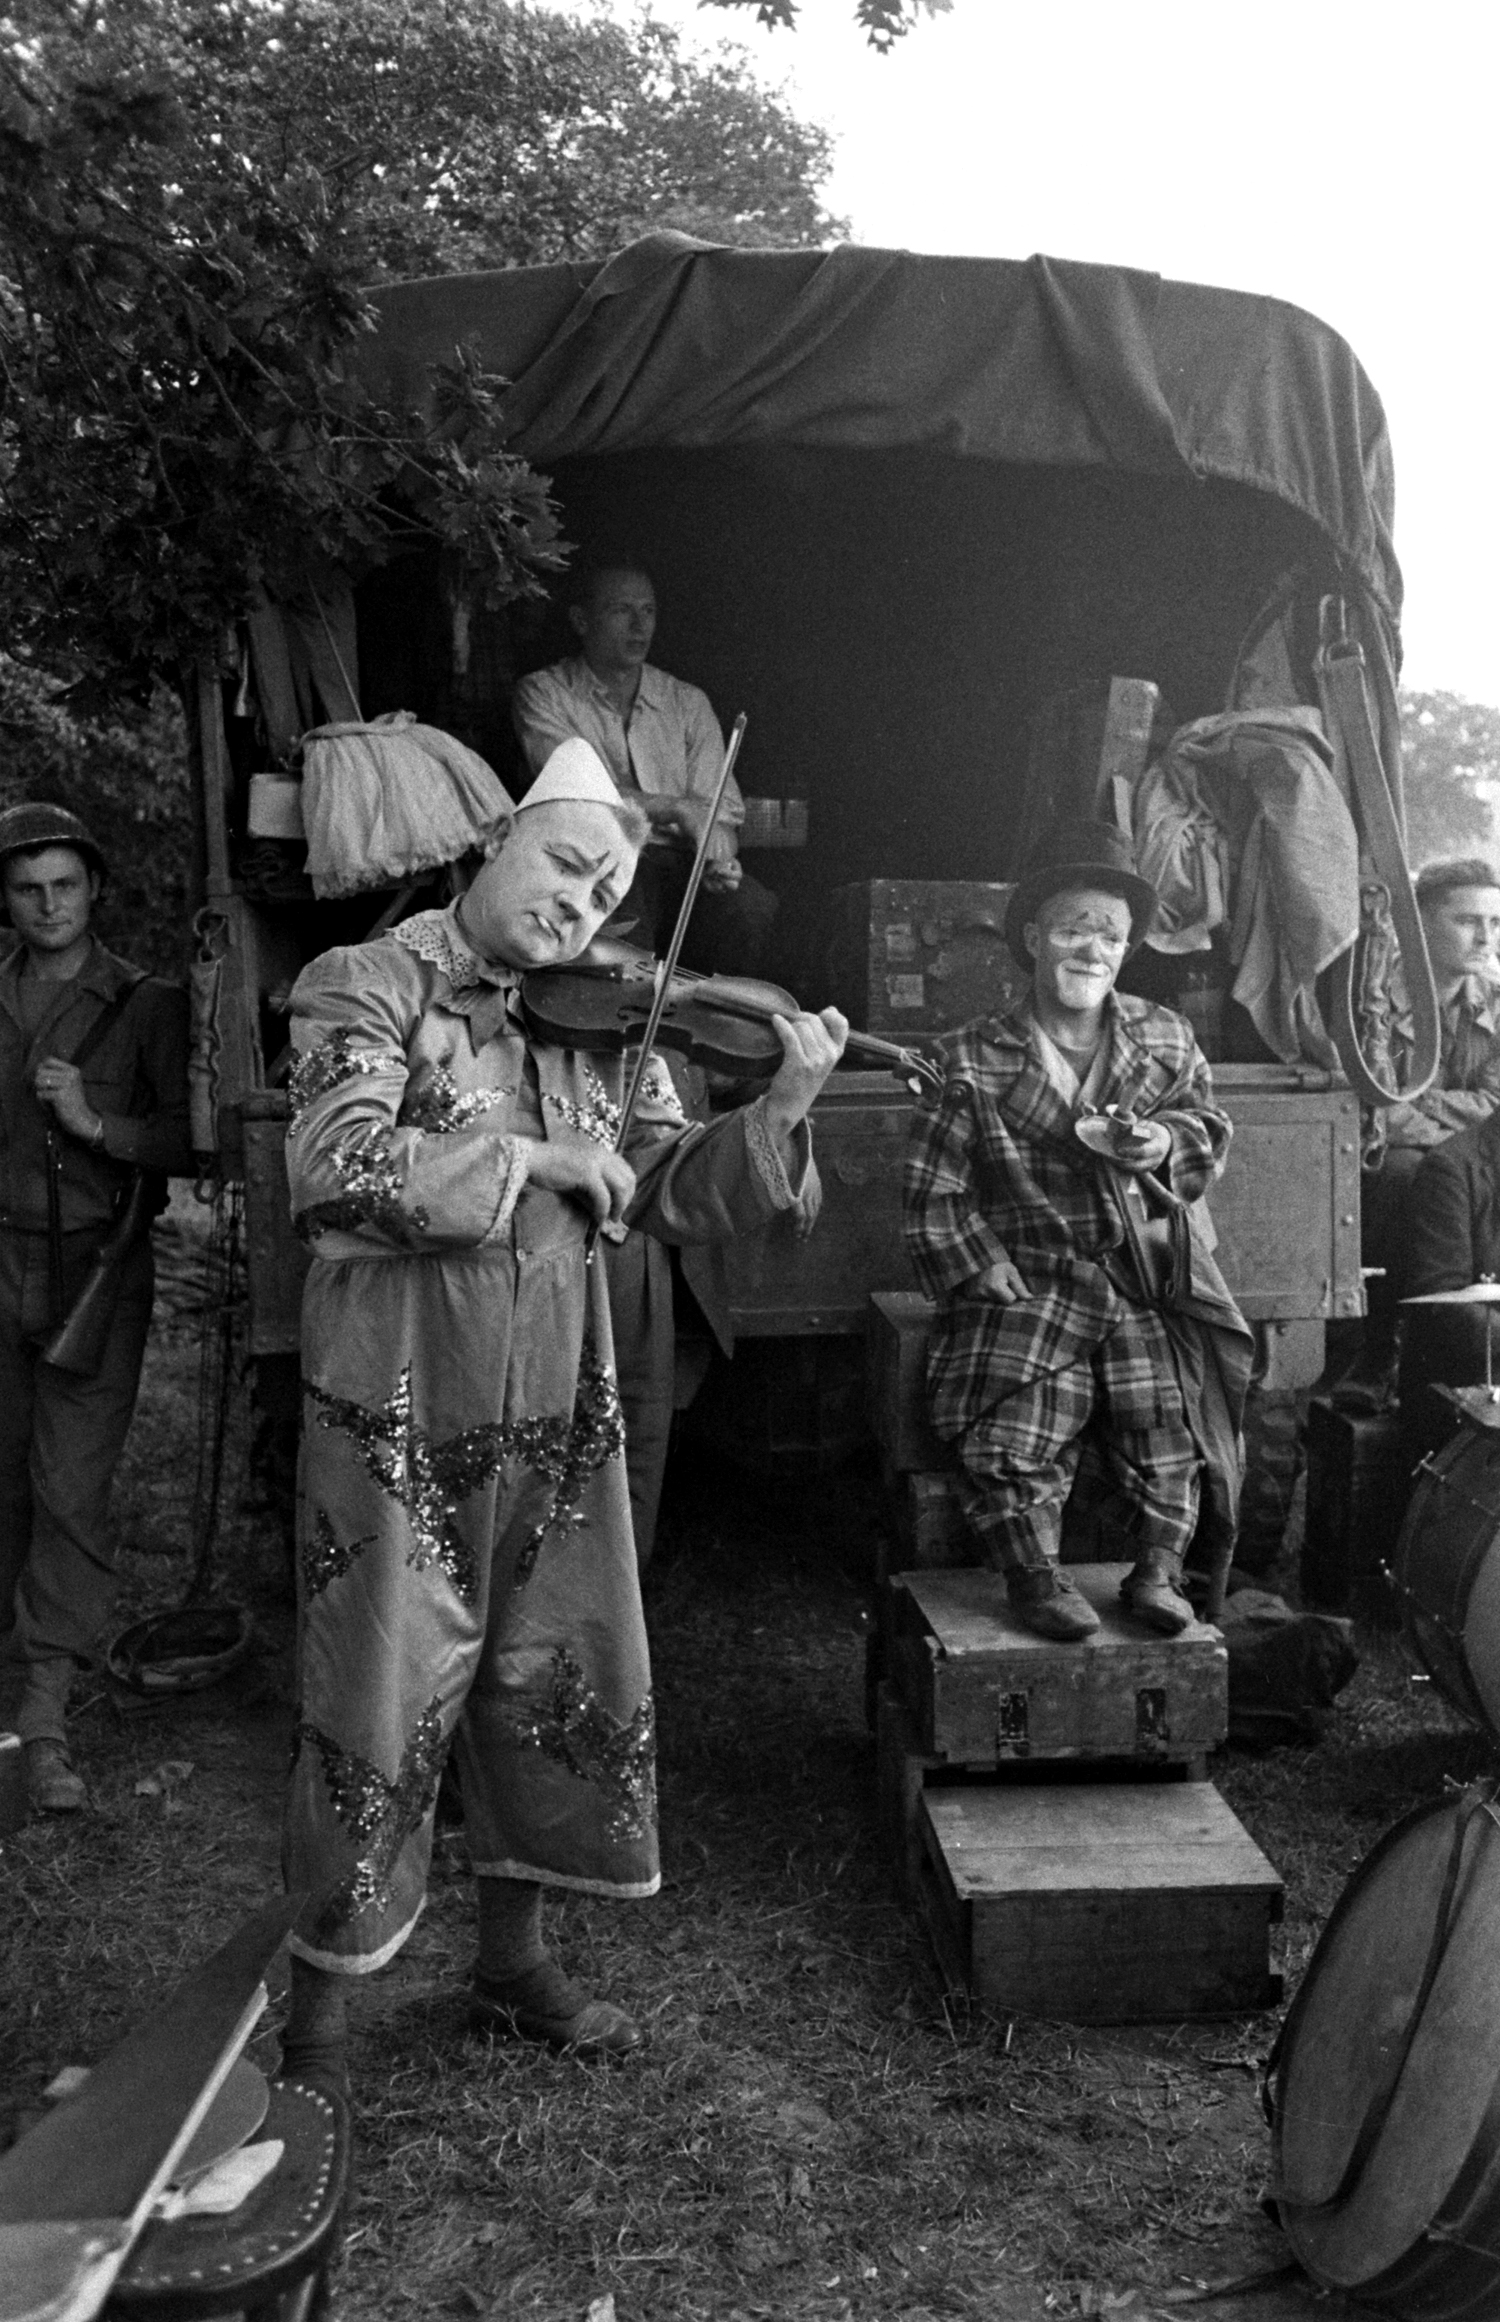 Performers in show for U.S. troops after D-Day, Normandy, 1944.